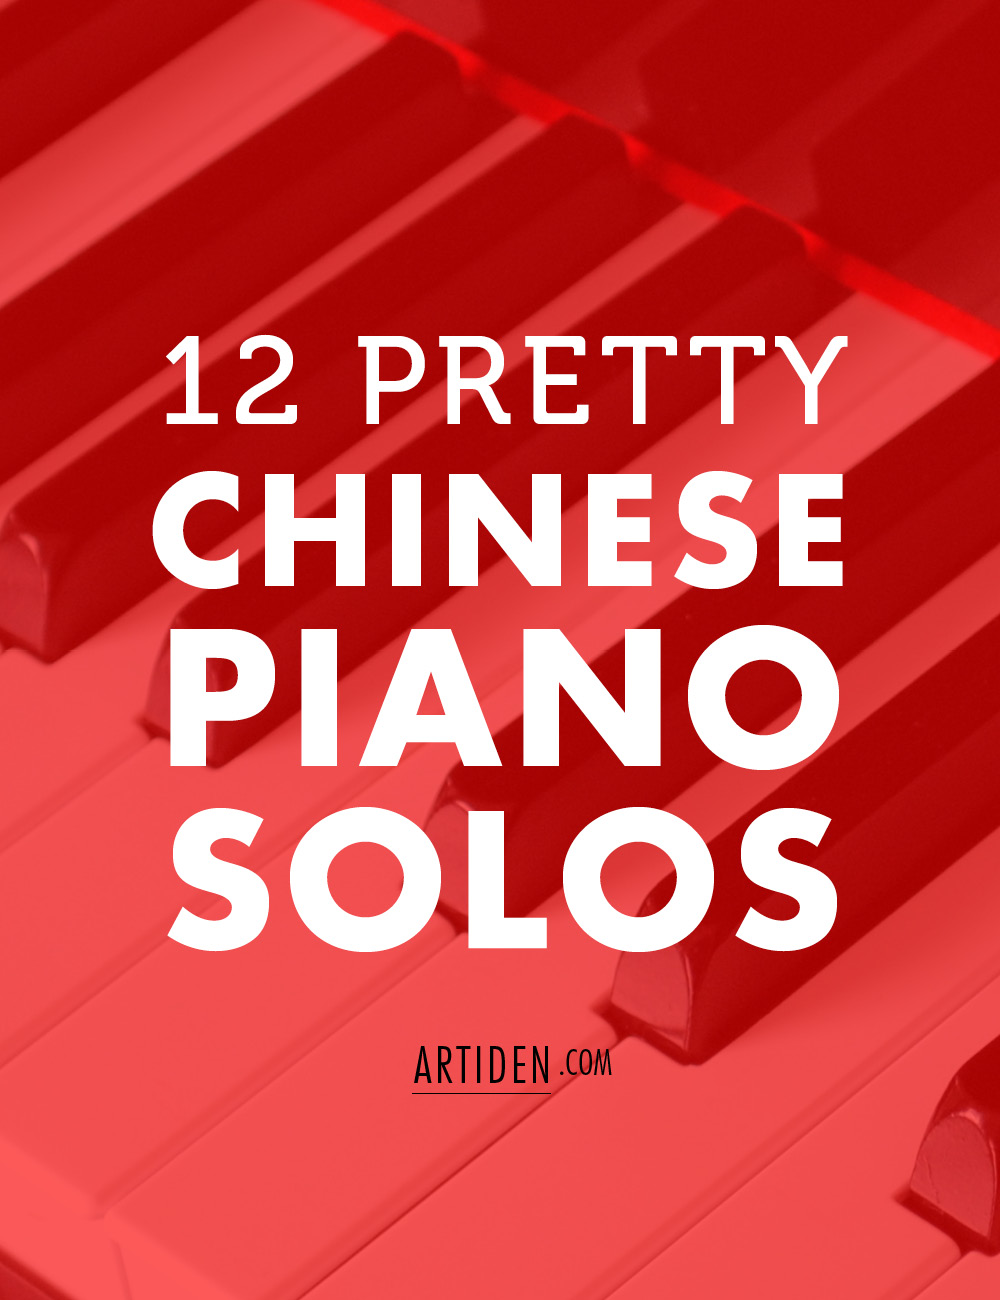 12 Pretty Chinese Piano Solos